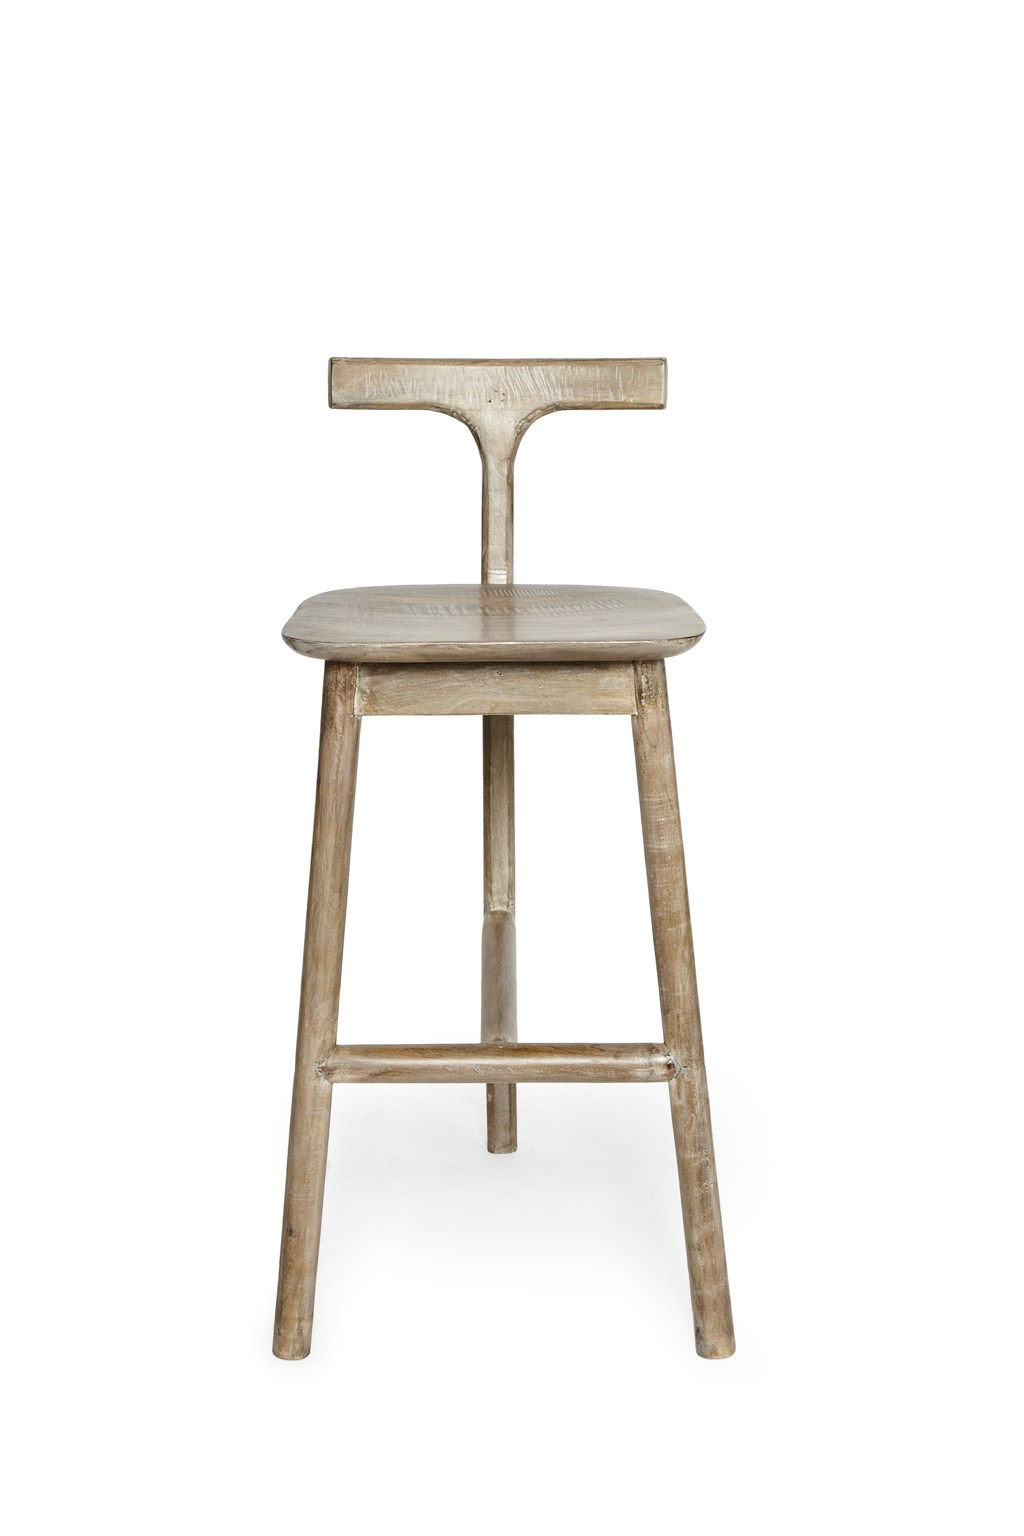 salvage wood t back bar stool home old season french connection. Black Bedroom Furniture Sets. Home Design Ideas